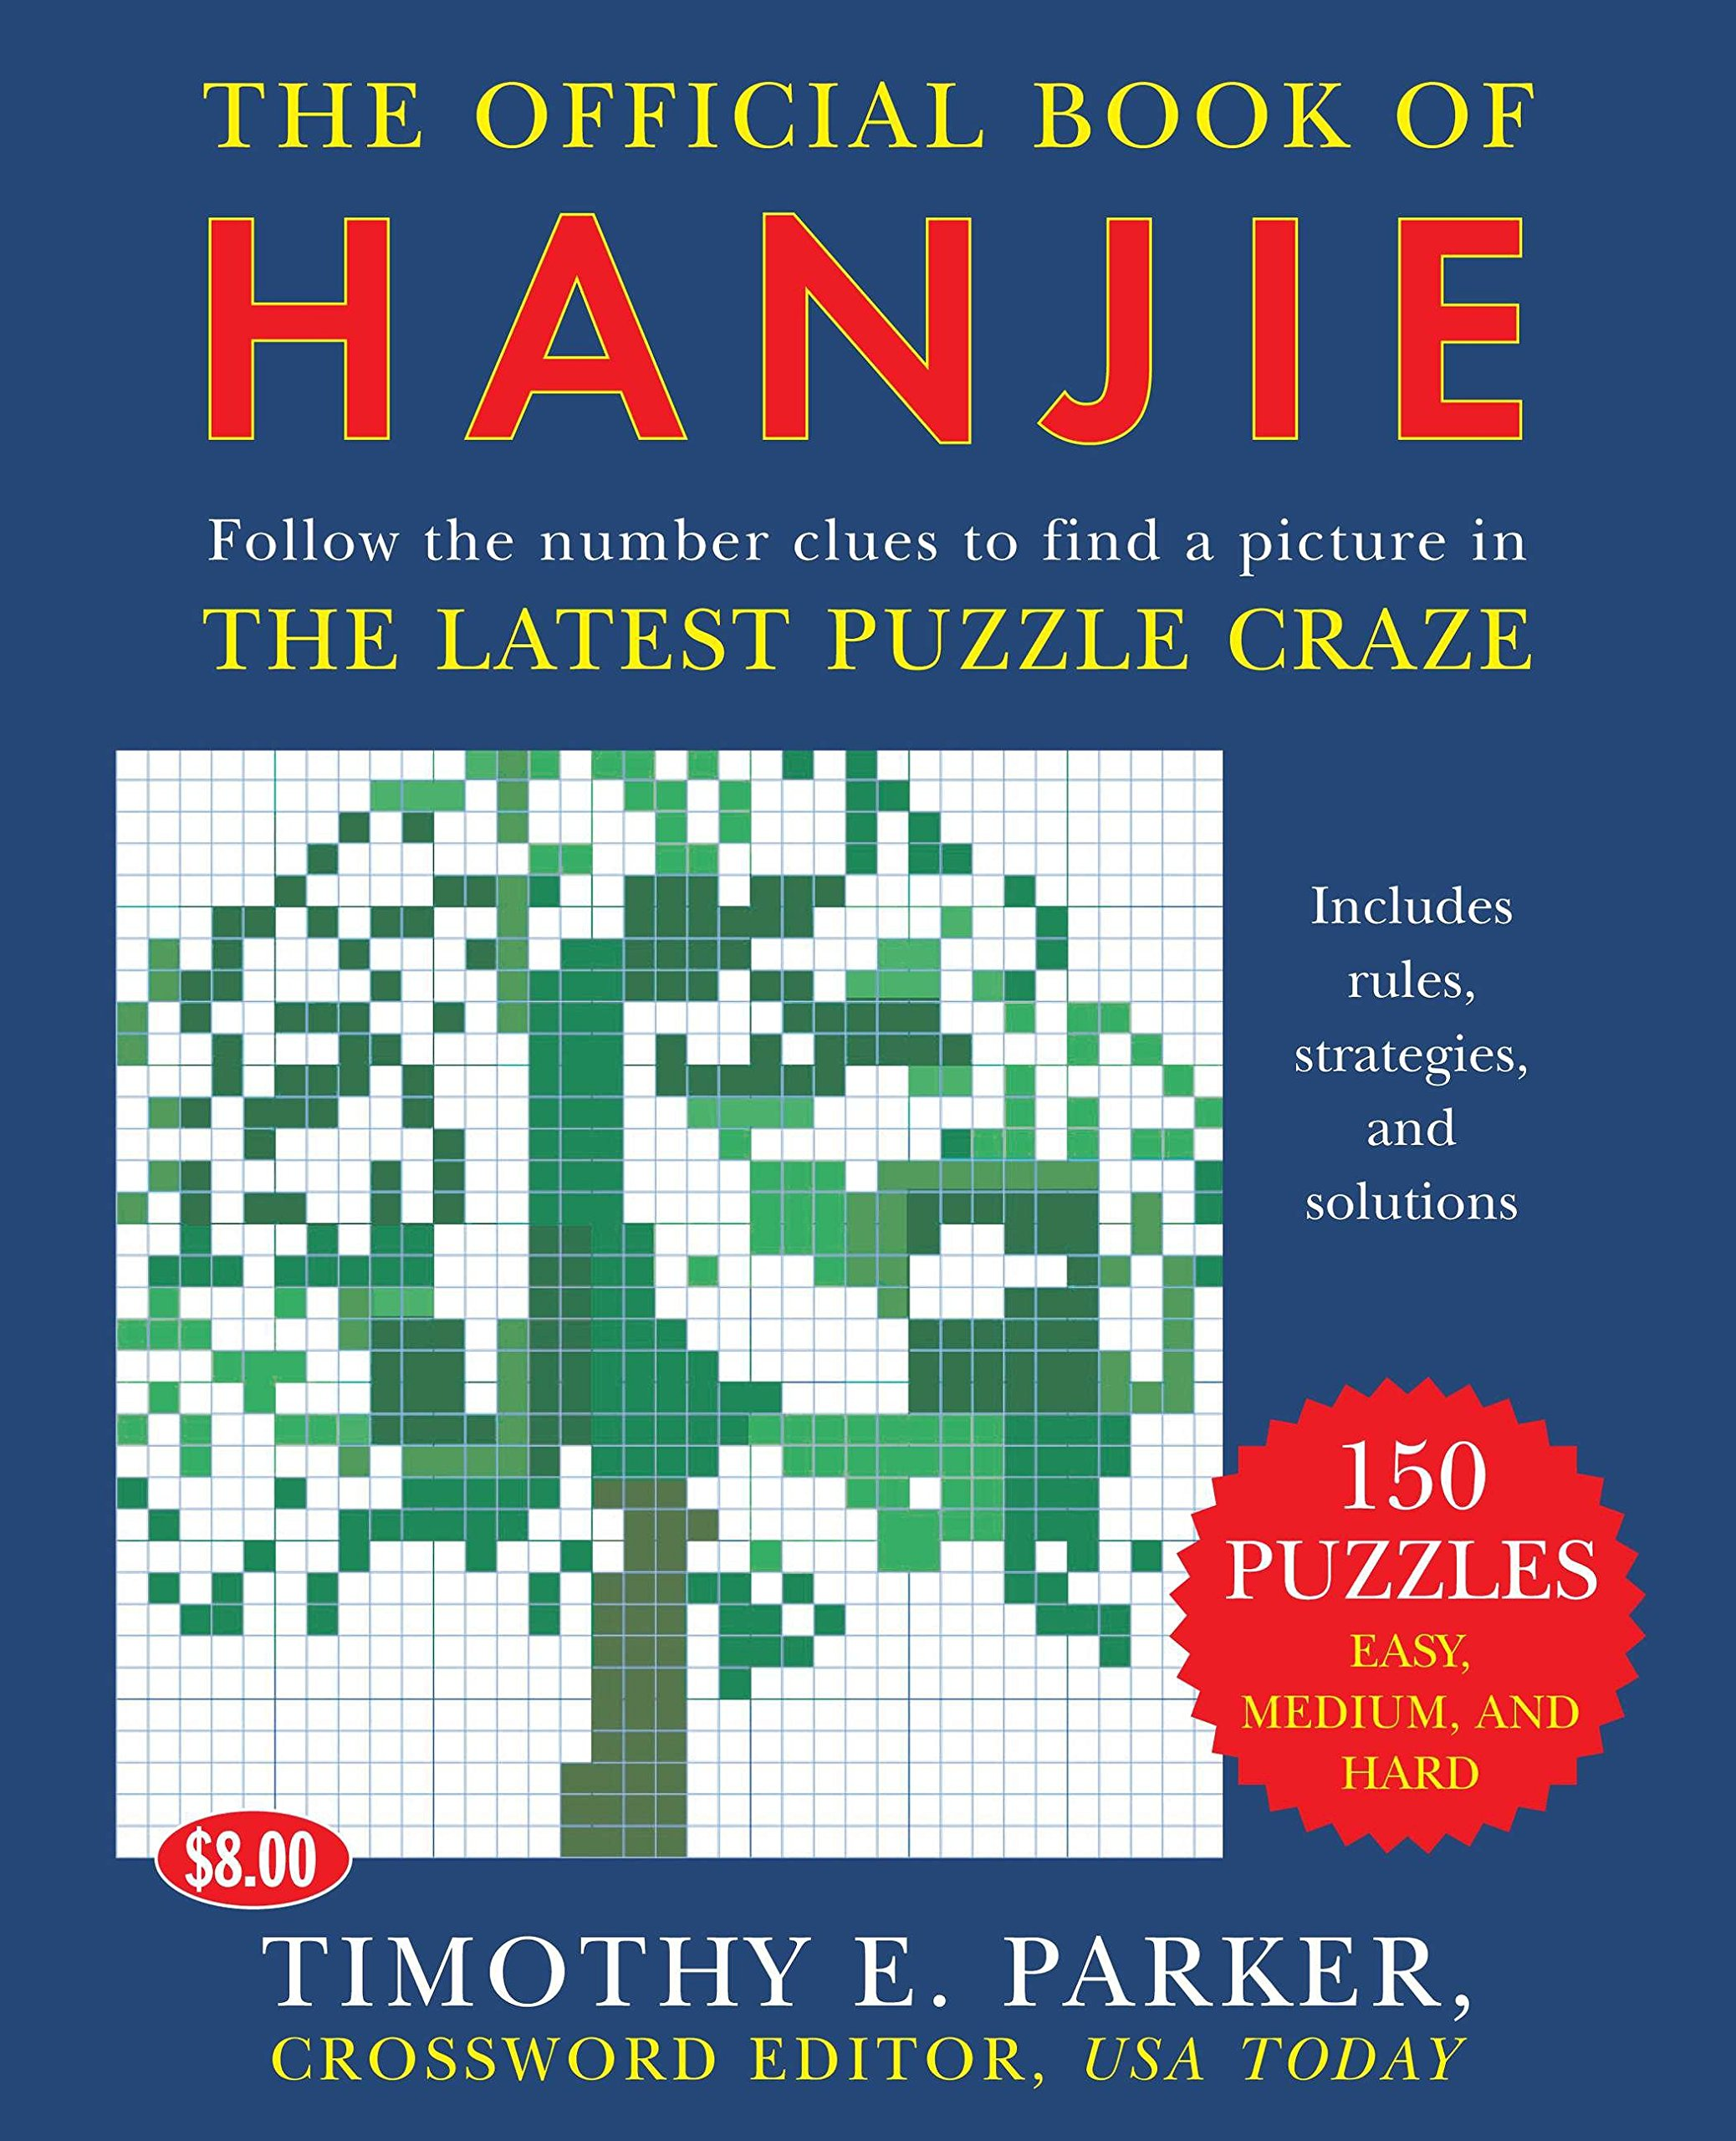 The Official Book of Hanjie: 150 Puzzles -- Follow the Number Clues to Find  a Picture: Timothy E. Parker: 9780452287921: Amazon.com: Books